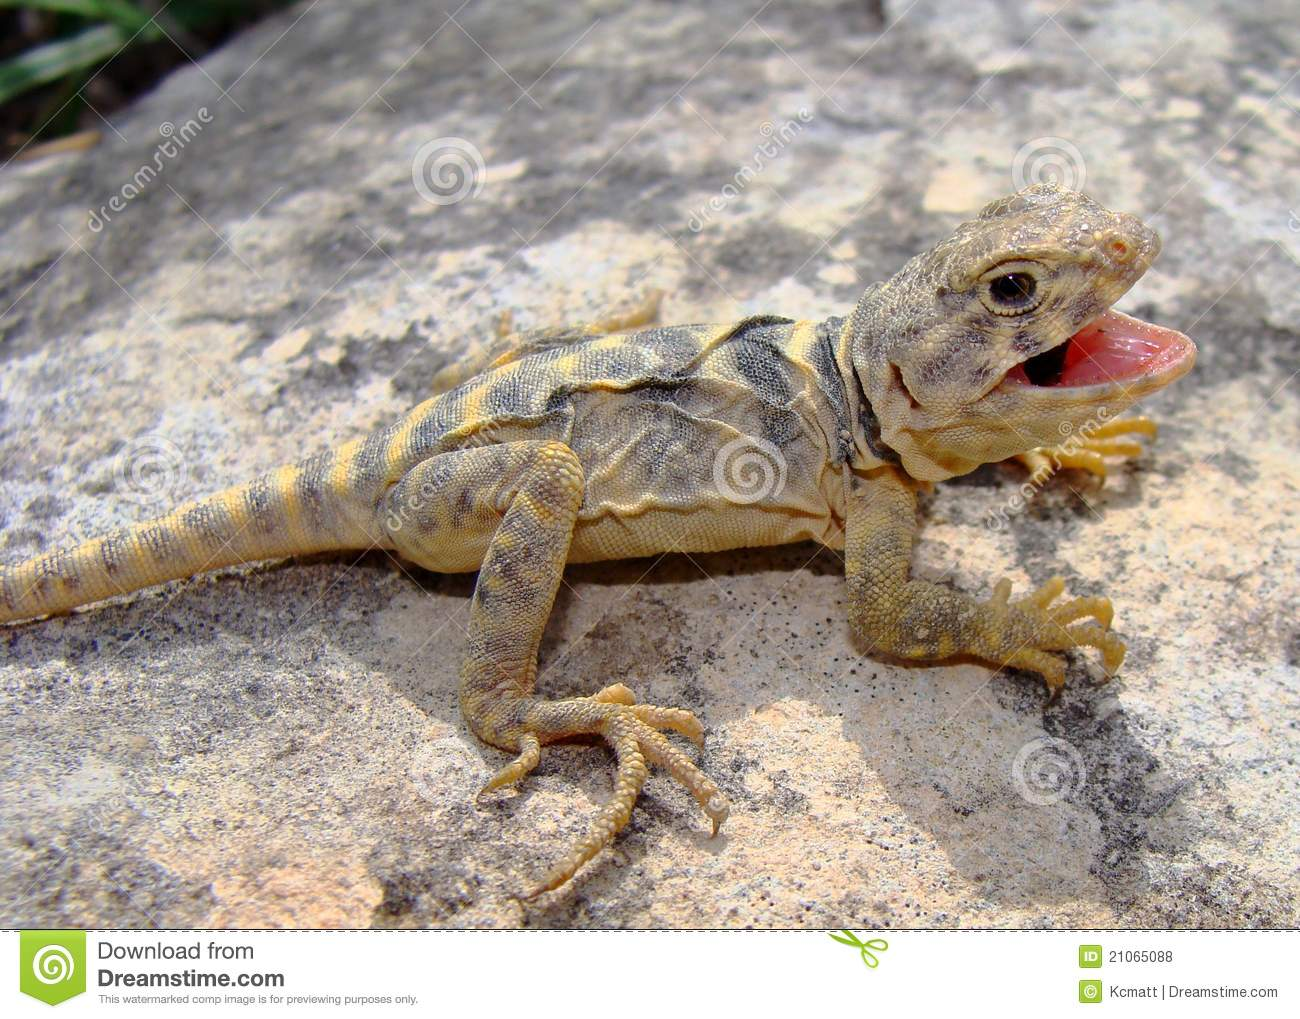 Collared Lizard clipart #17, Download drawings